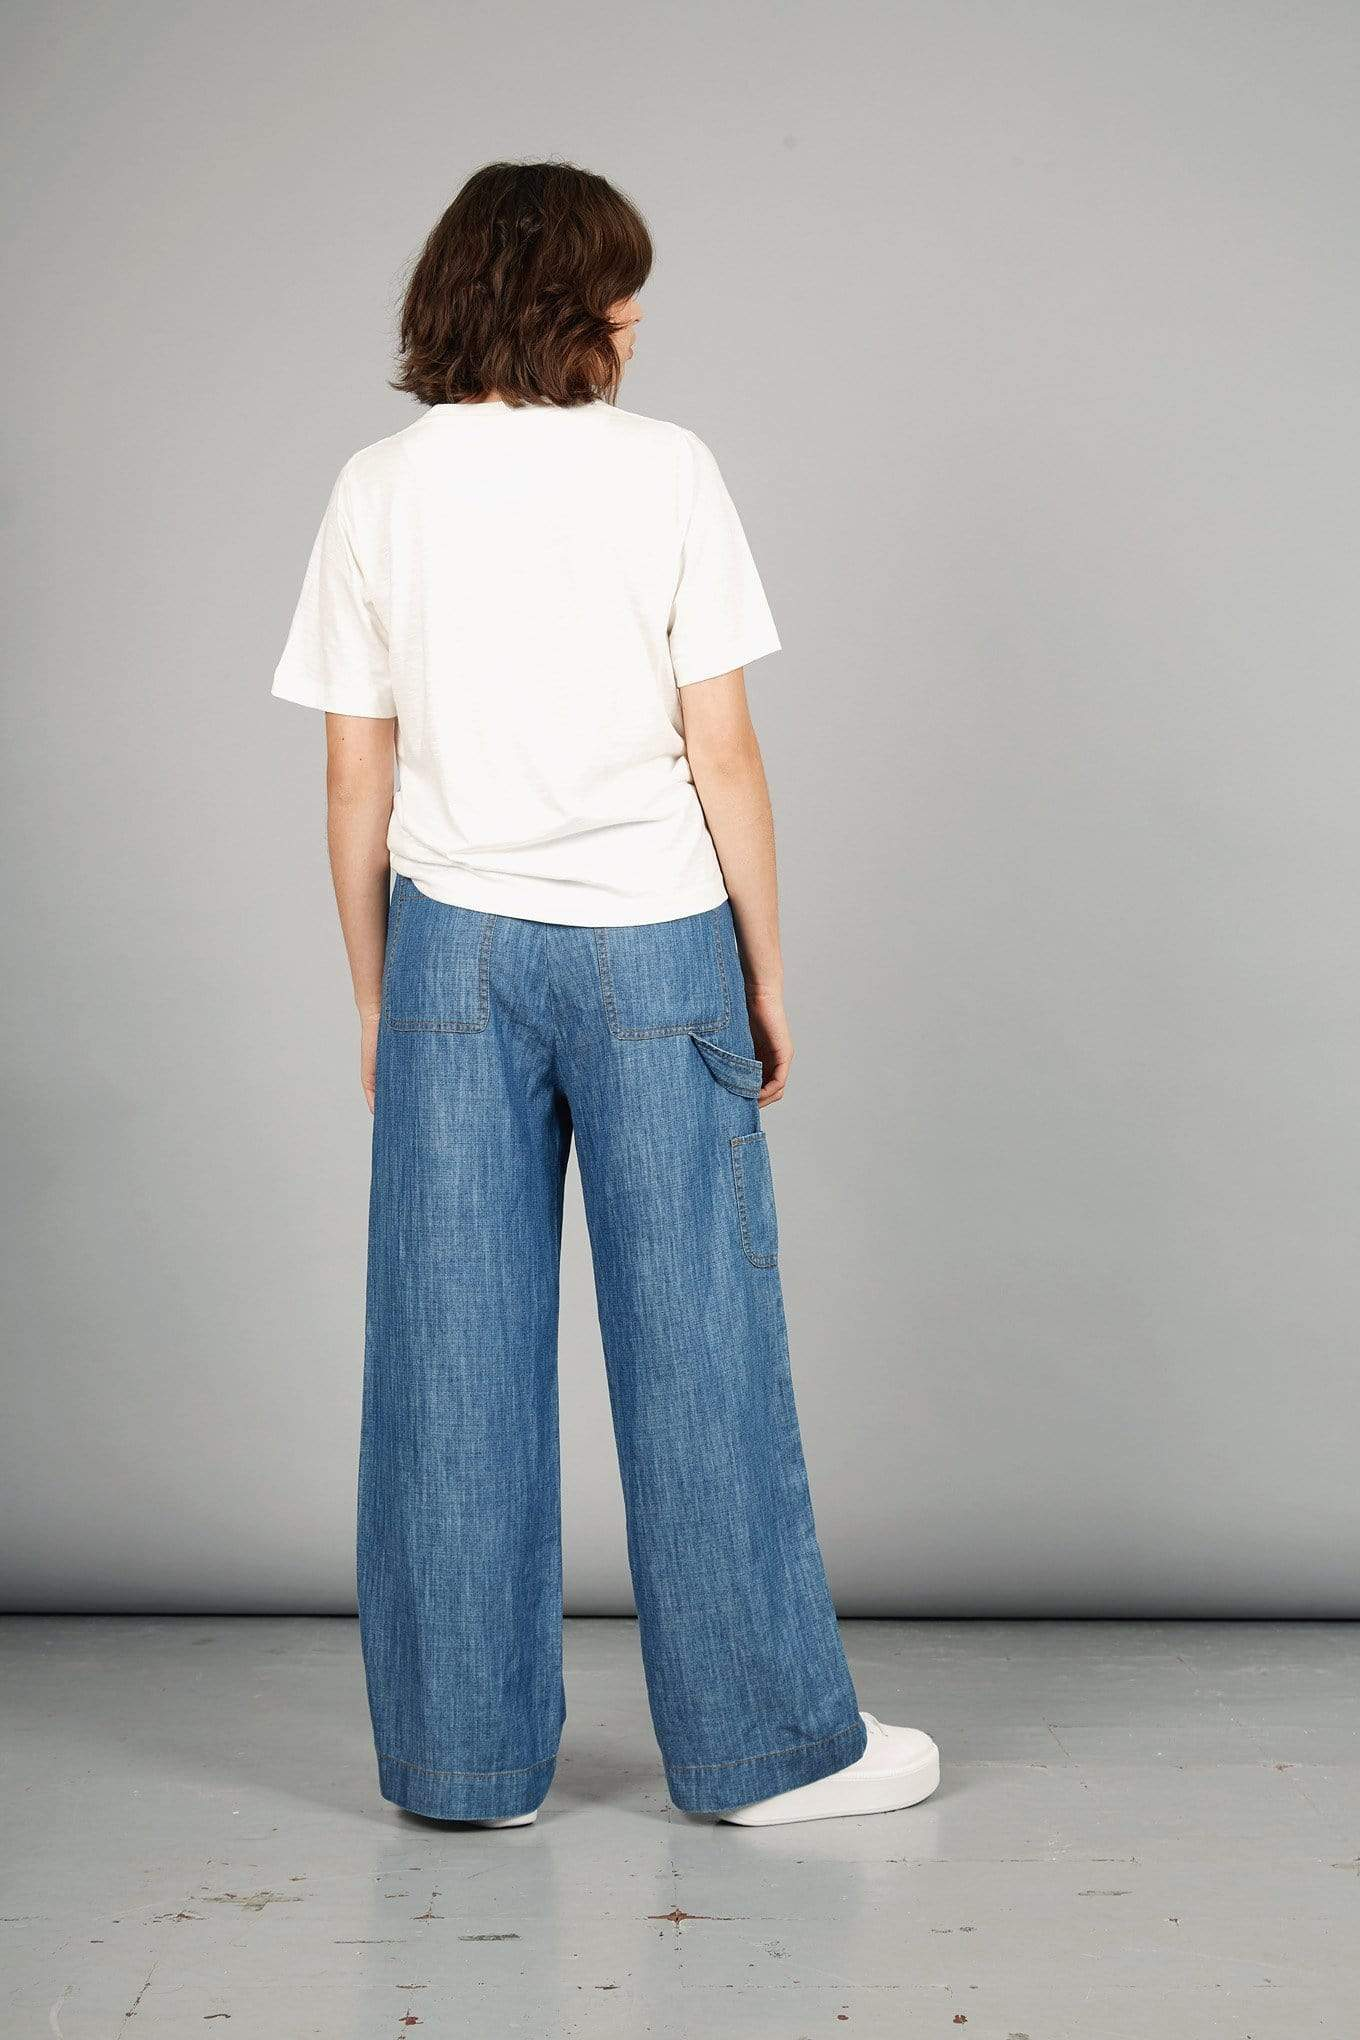 The Yakit Rakit Ltd pants DROVER Trousers in Tencel and Linen. sustainable fashion ethical fashion